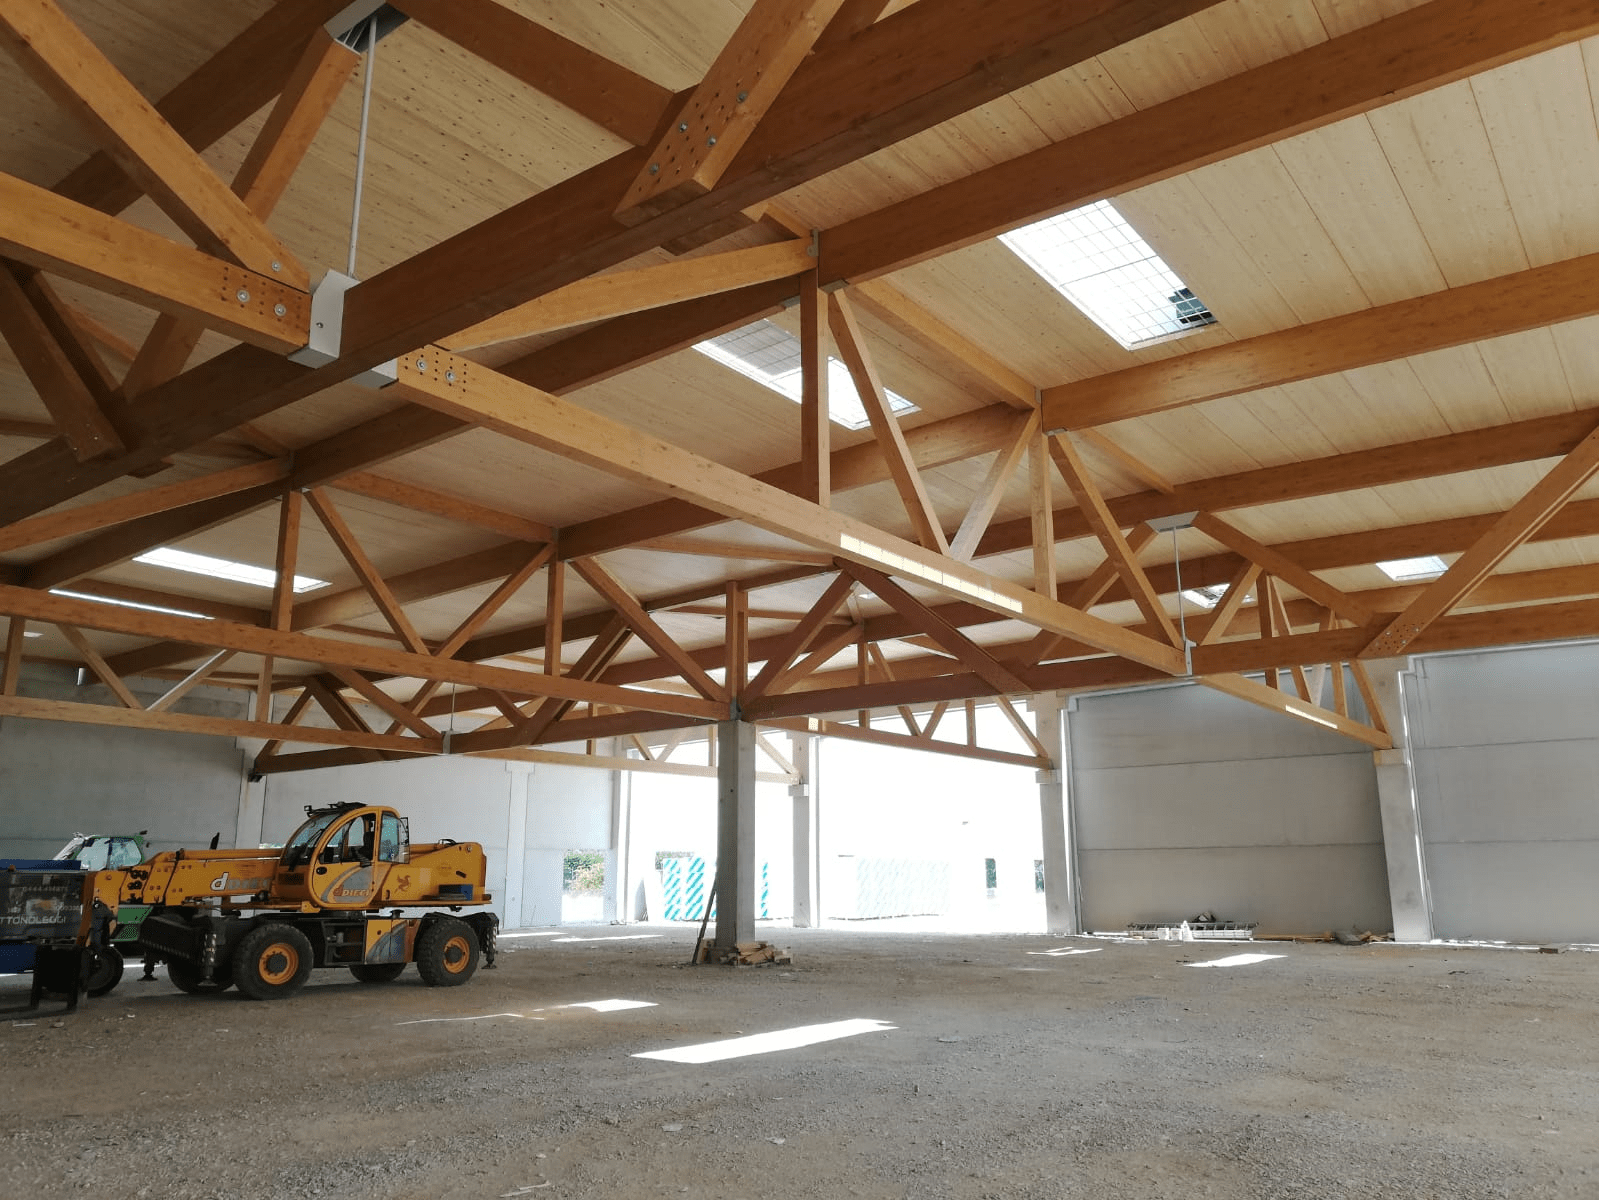 Timber Truss Girders and Glued-Laminated Timber Decking (© Holz Albertani SpA)